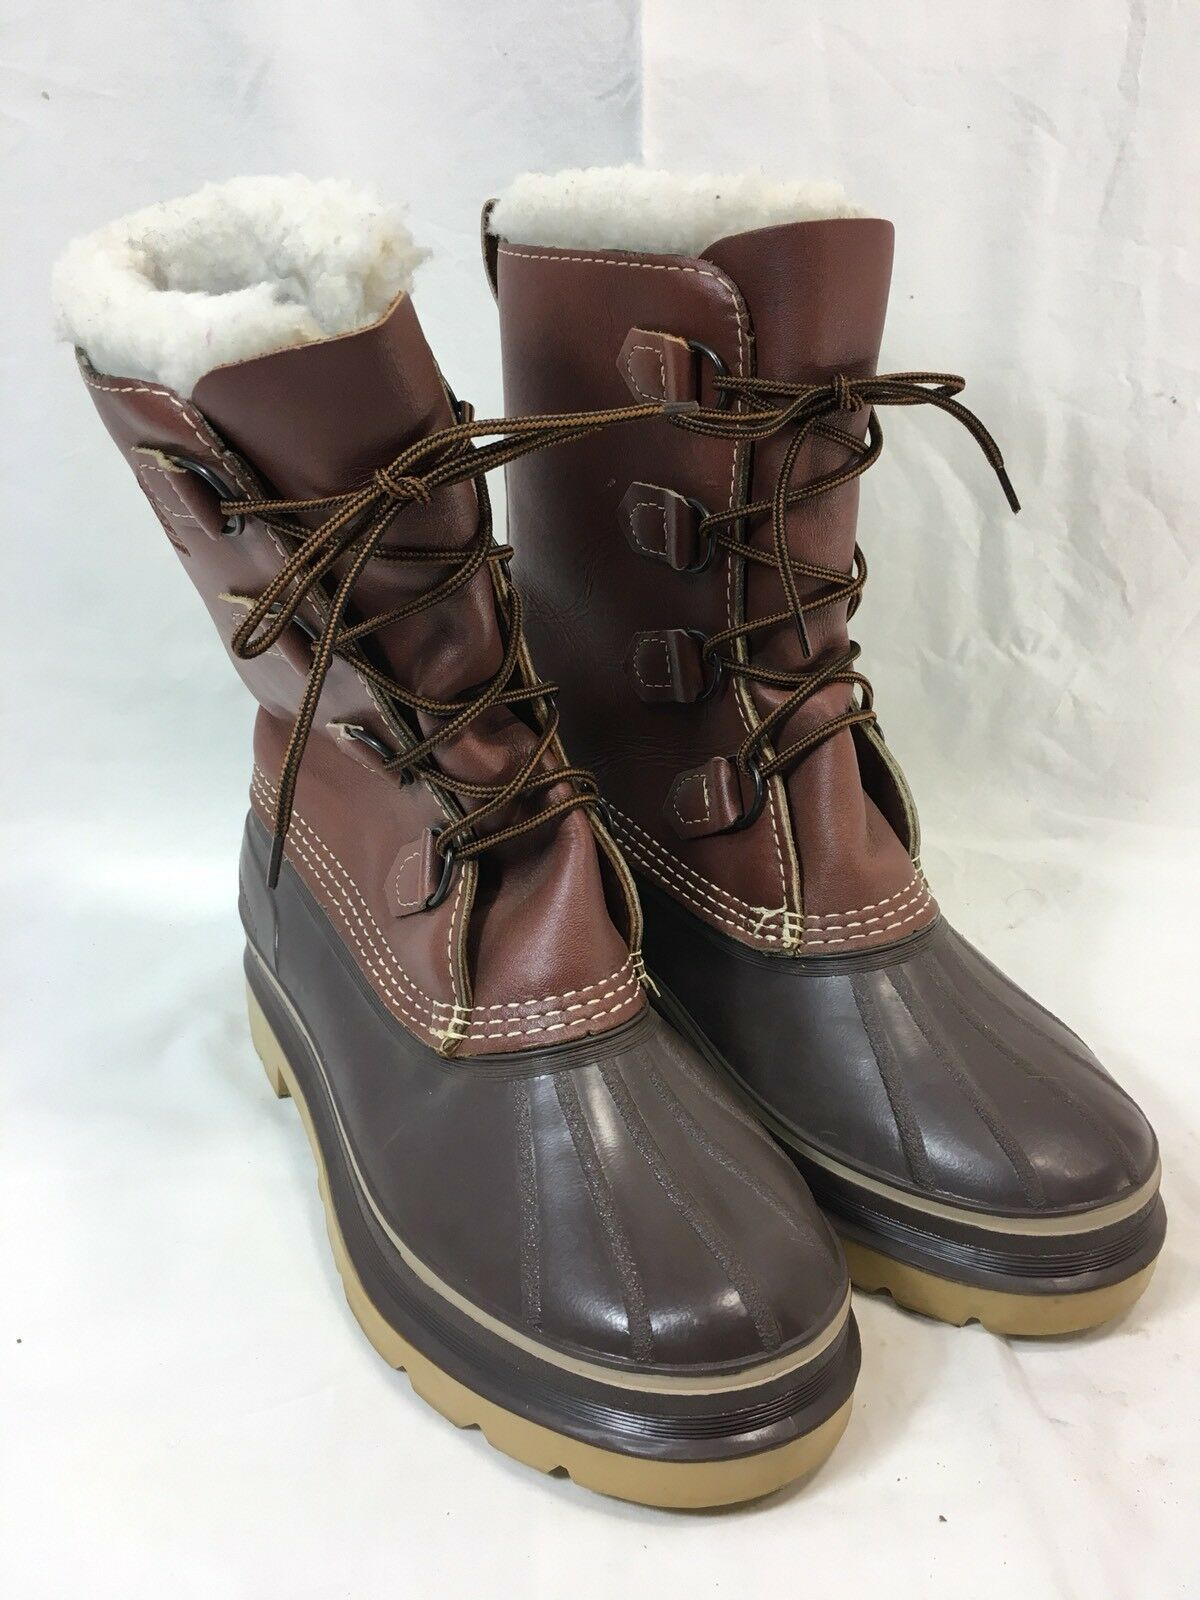 KAMIK WATERPROOF PAC FELT LINERS Damenschuhe 7 SNOW Stiefel BROWN LEATHER LEATHER BROWN RUBBER CANADA b0263a